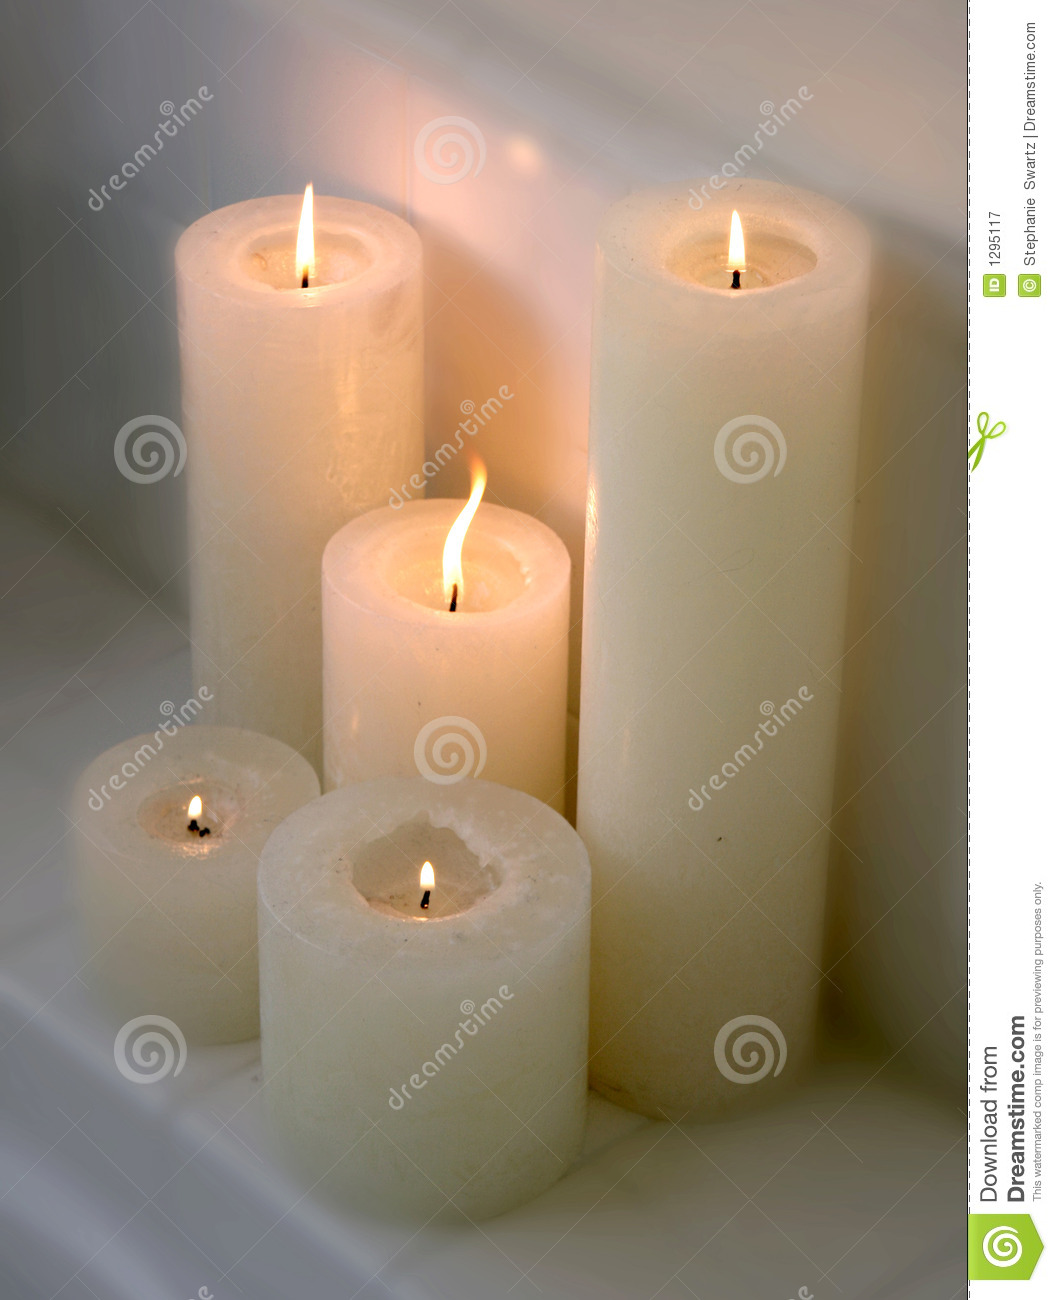 Cluster Of Lit Candles On A Ledge Royalty Free Stock Photography ...